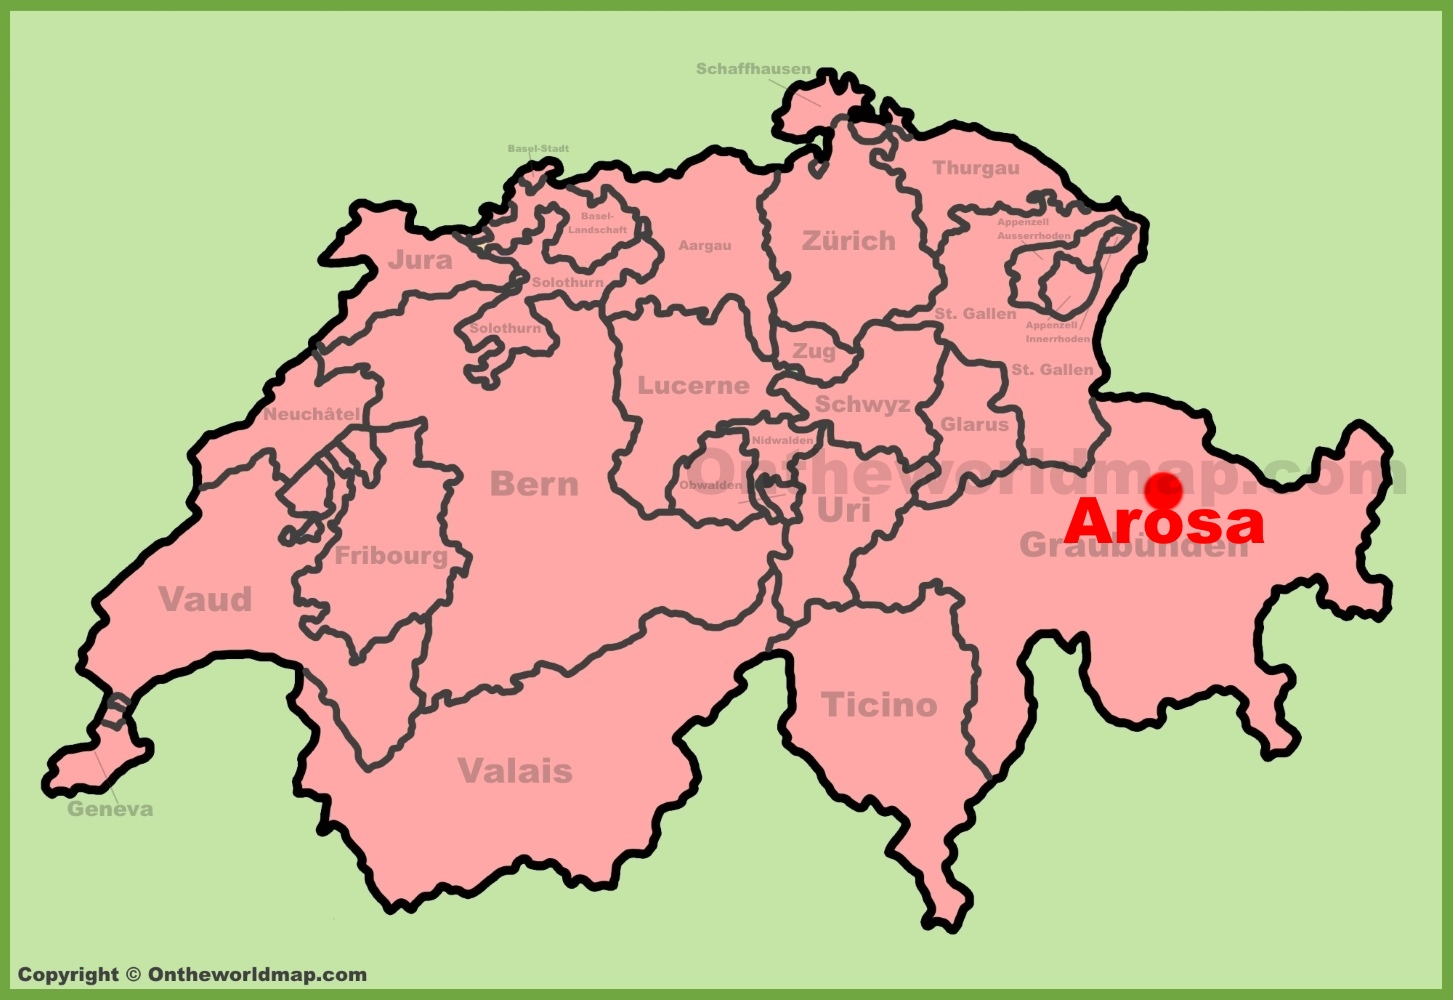 Arosa Maps Switzerland Maps of Arosa